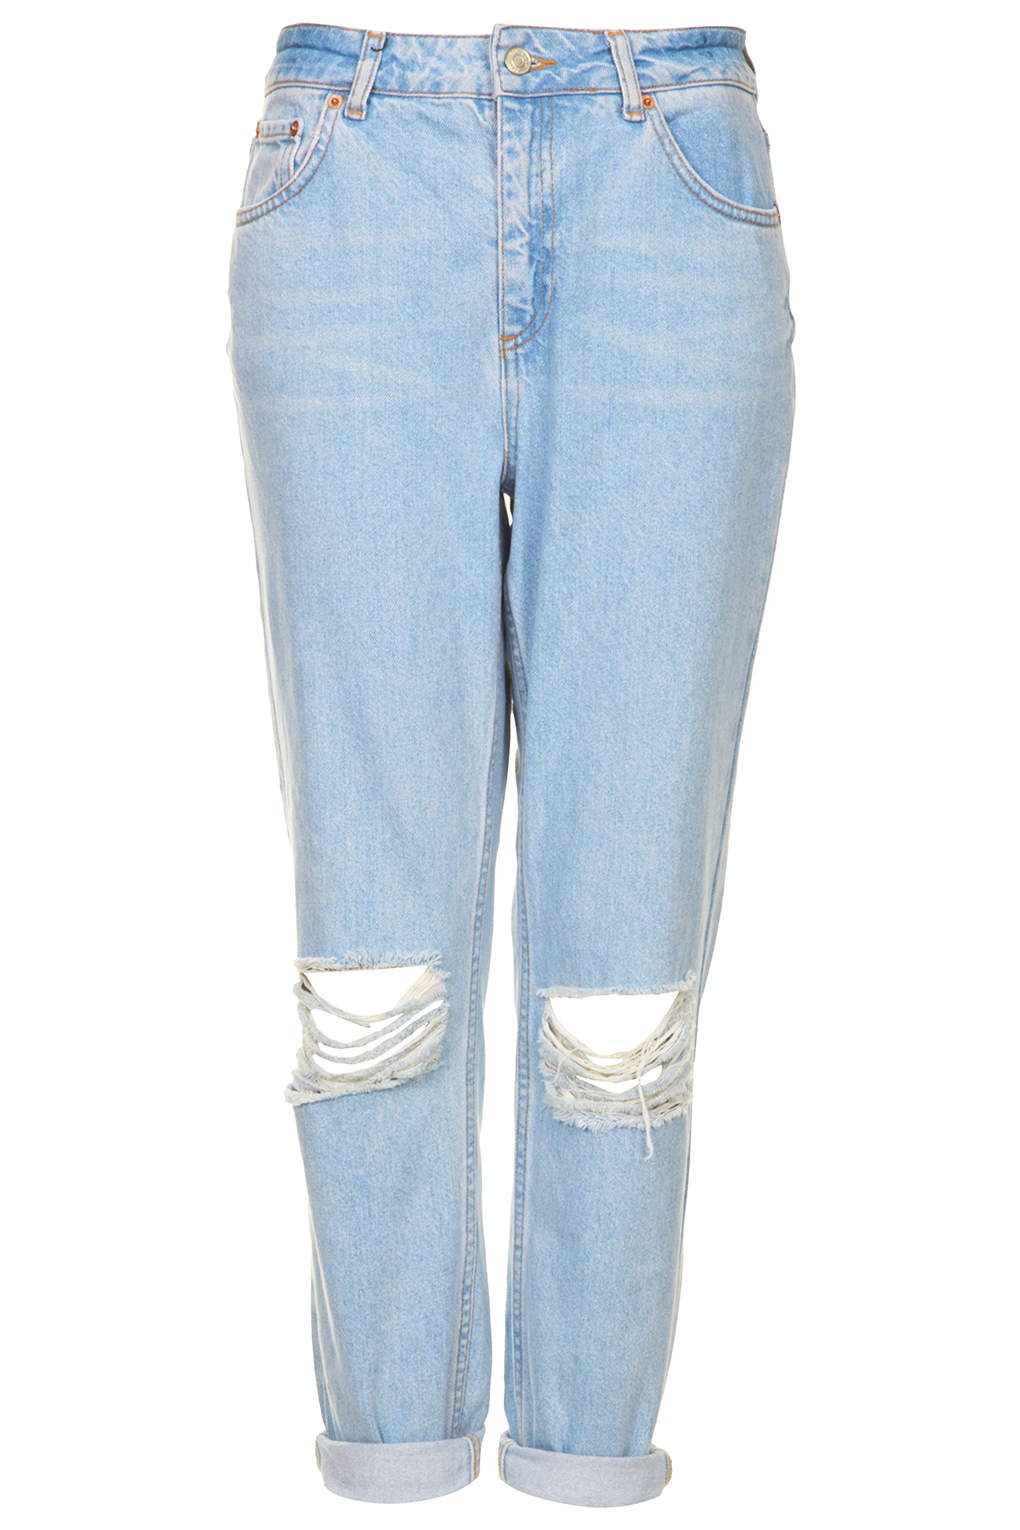 Lyst Topshop Moto Blue Ripped Mom Jeans In Blue